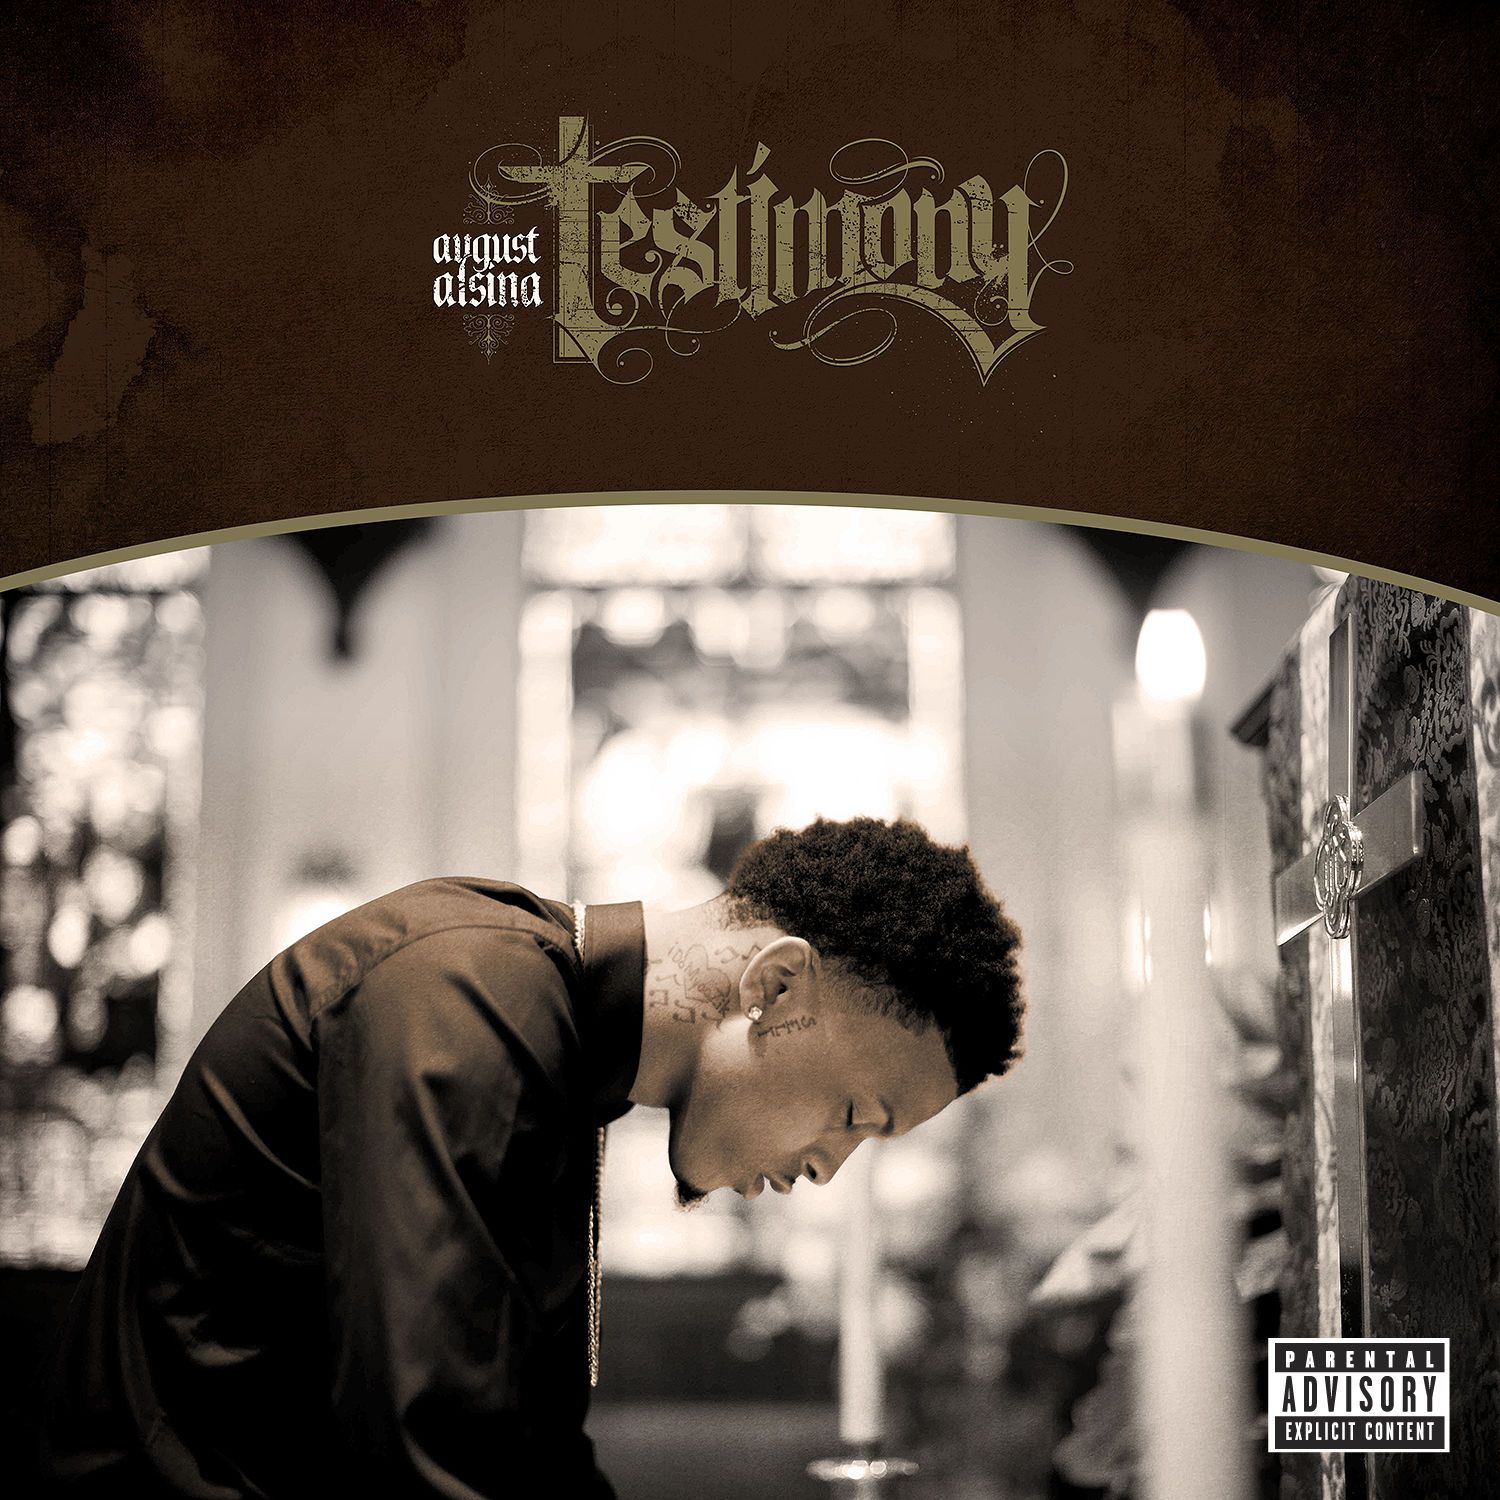 Testimony by August Alsina on iTunes